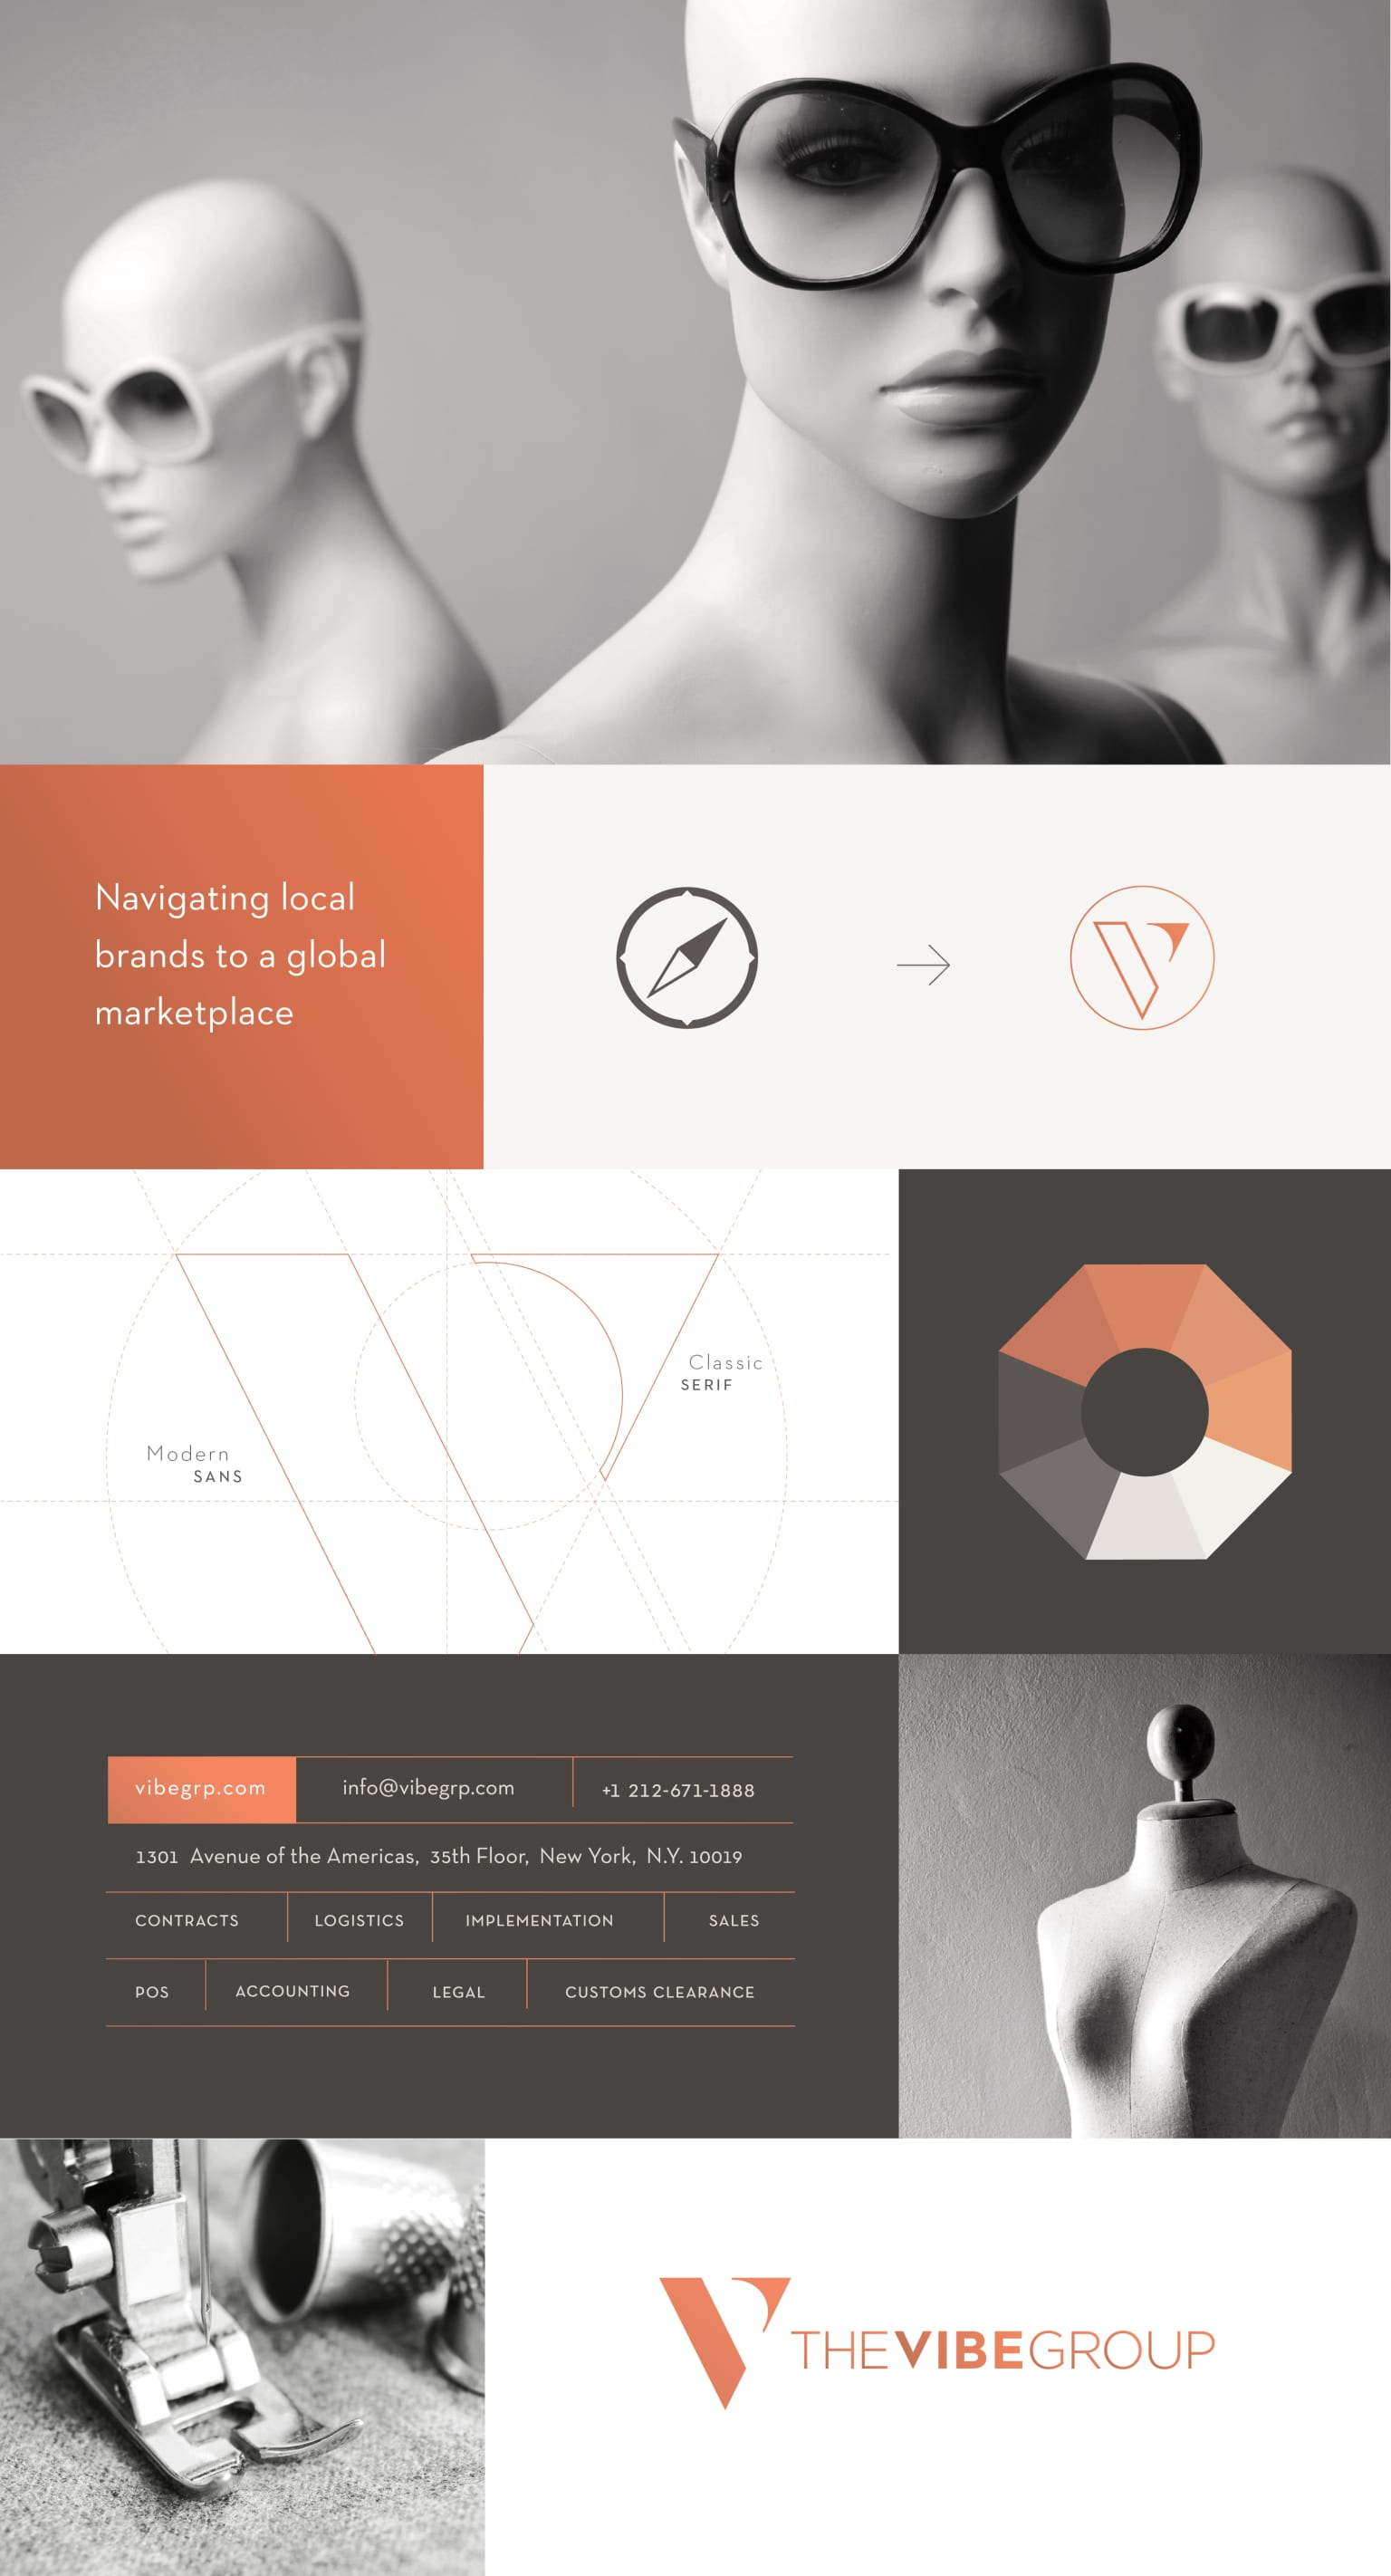 The Vibe Group Brand Identity